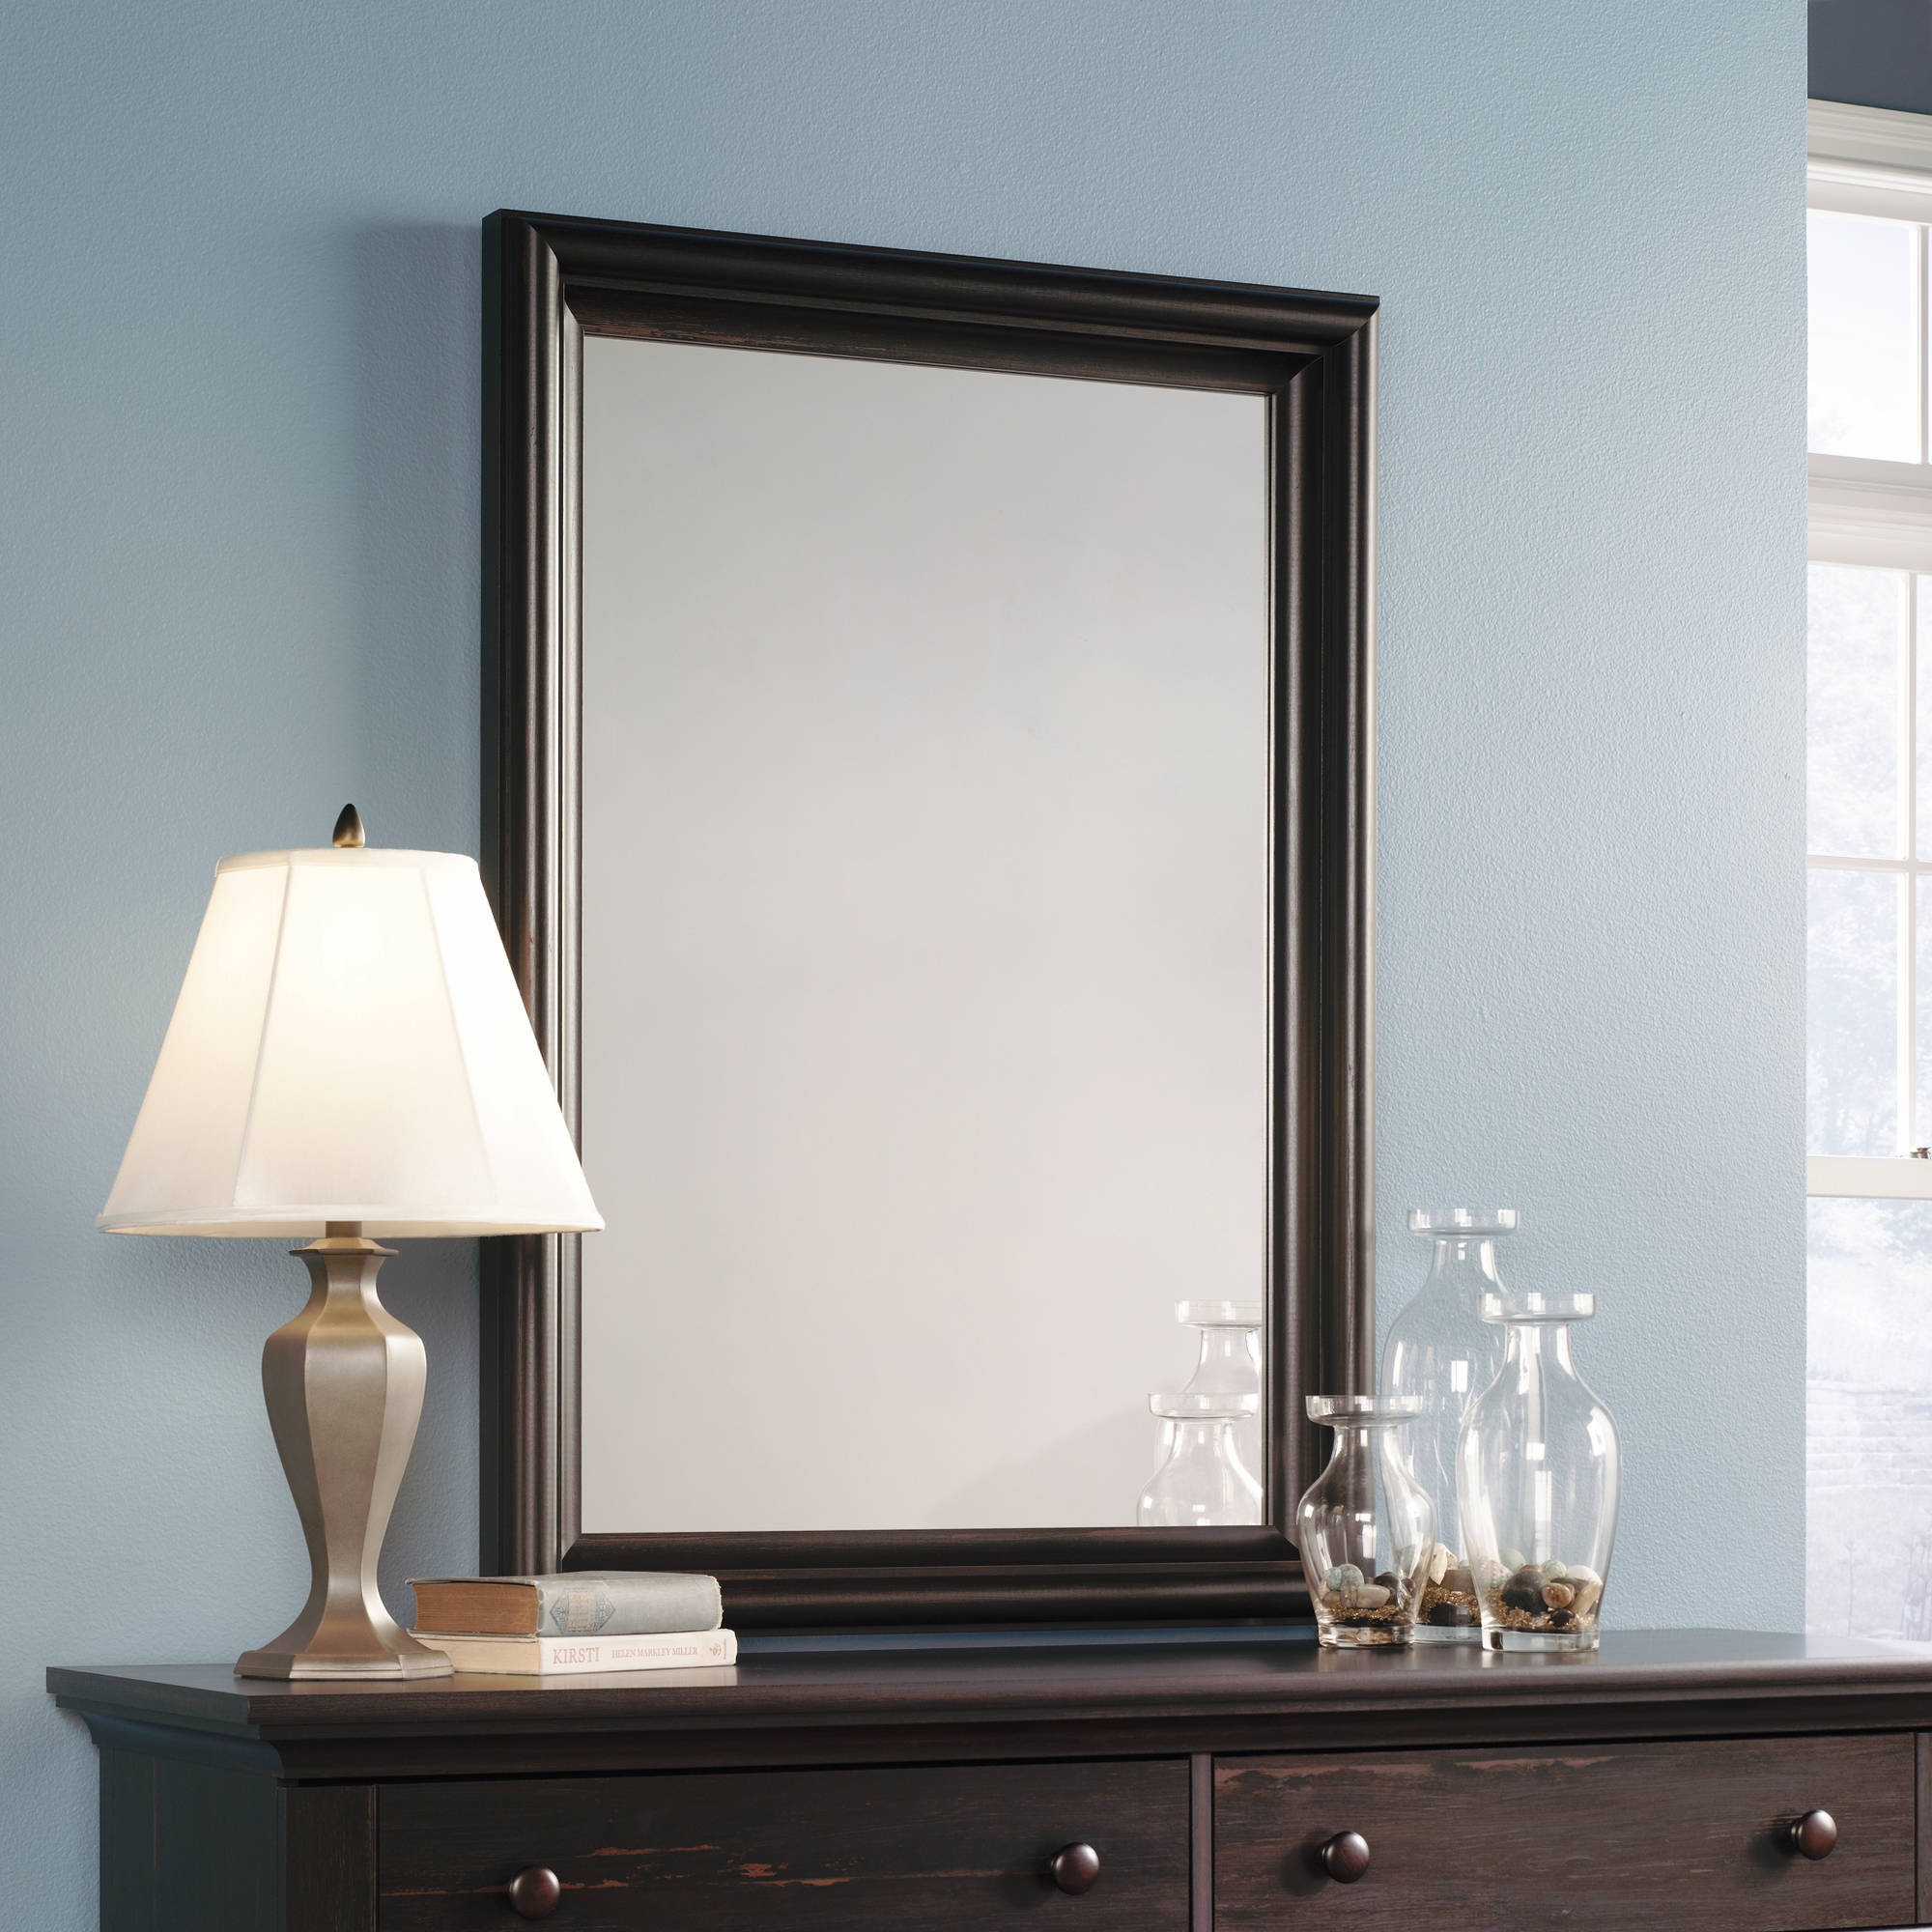 Sauder Harbor View Mirror, Antiqued Paint Finish